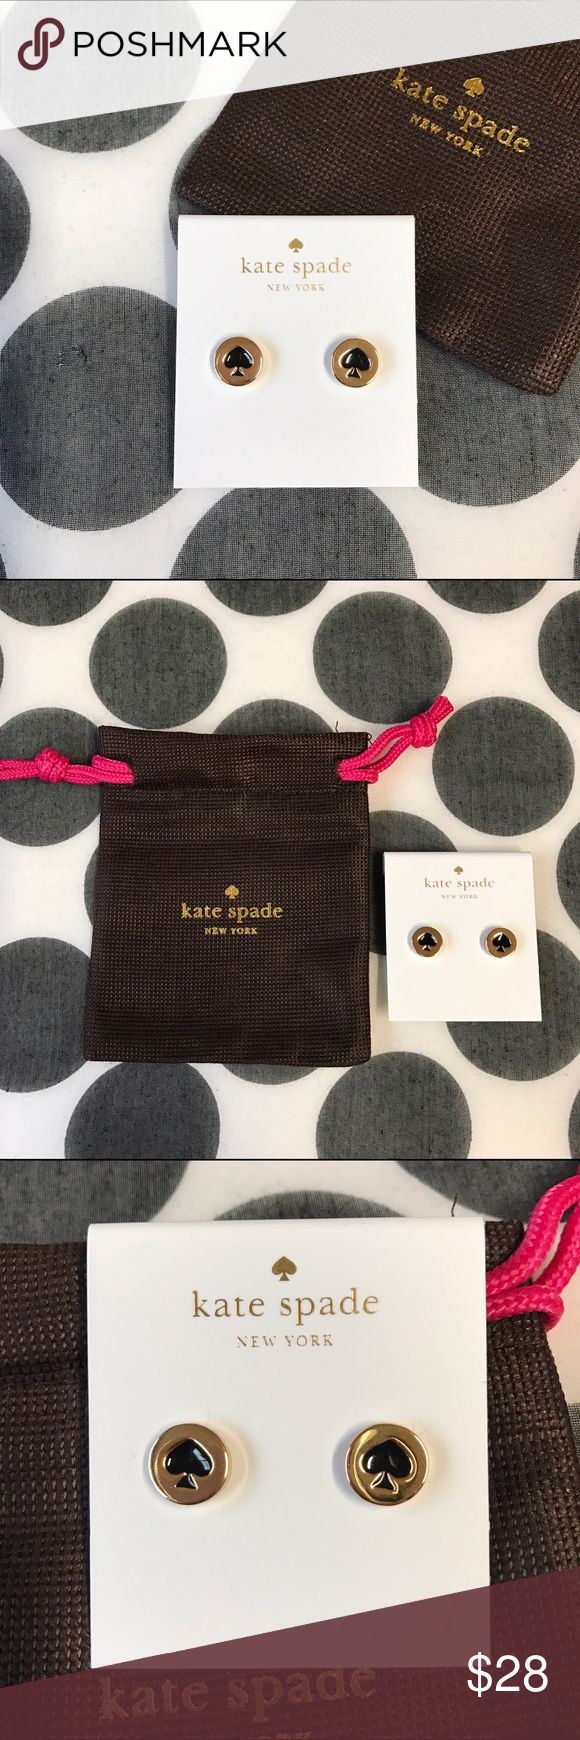 "KSNY studs earrings (gold/black spade) Authentic Kate Spade studs earrings in gold ""spot the spade"" black spade; brand new; includes dust bag as pictured. kate spade Jewelry Earrings"